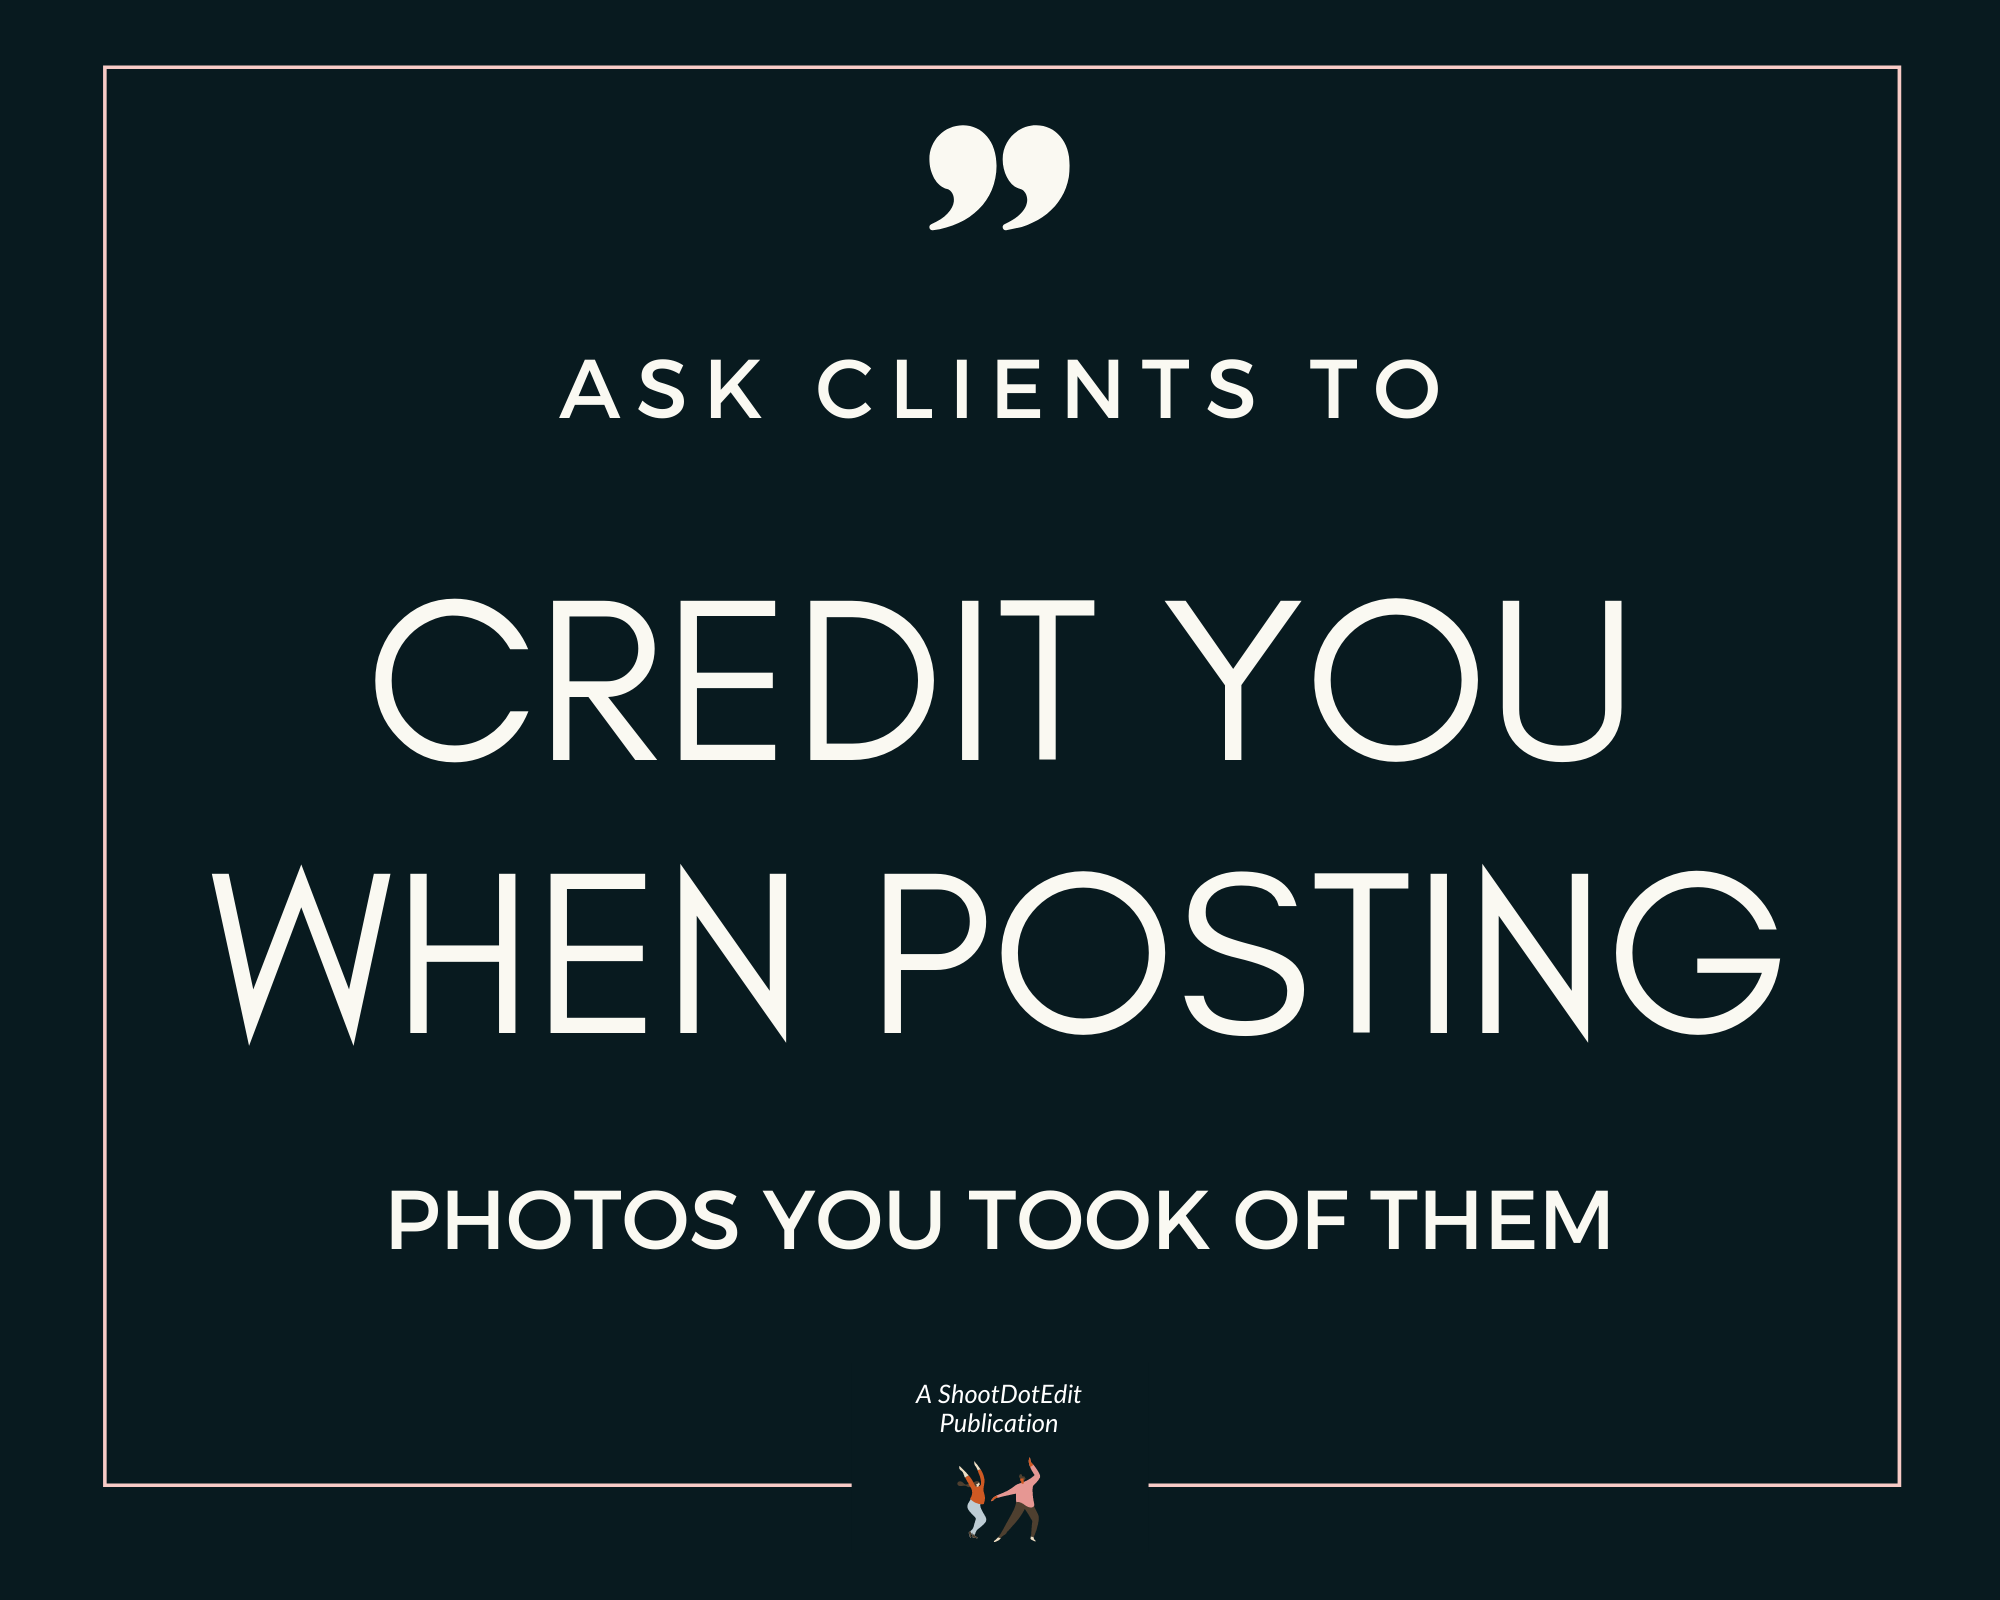 Infographic stating ask clients to credit you when posting photos you took of them